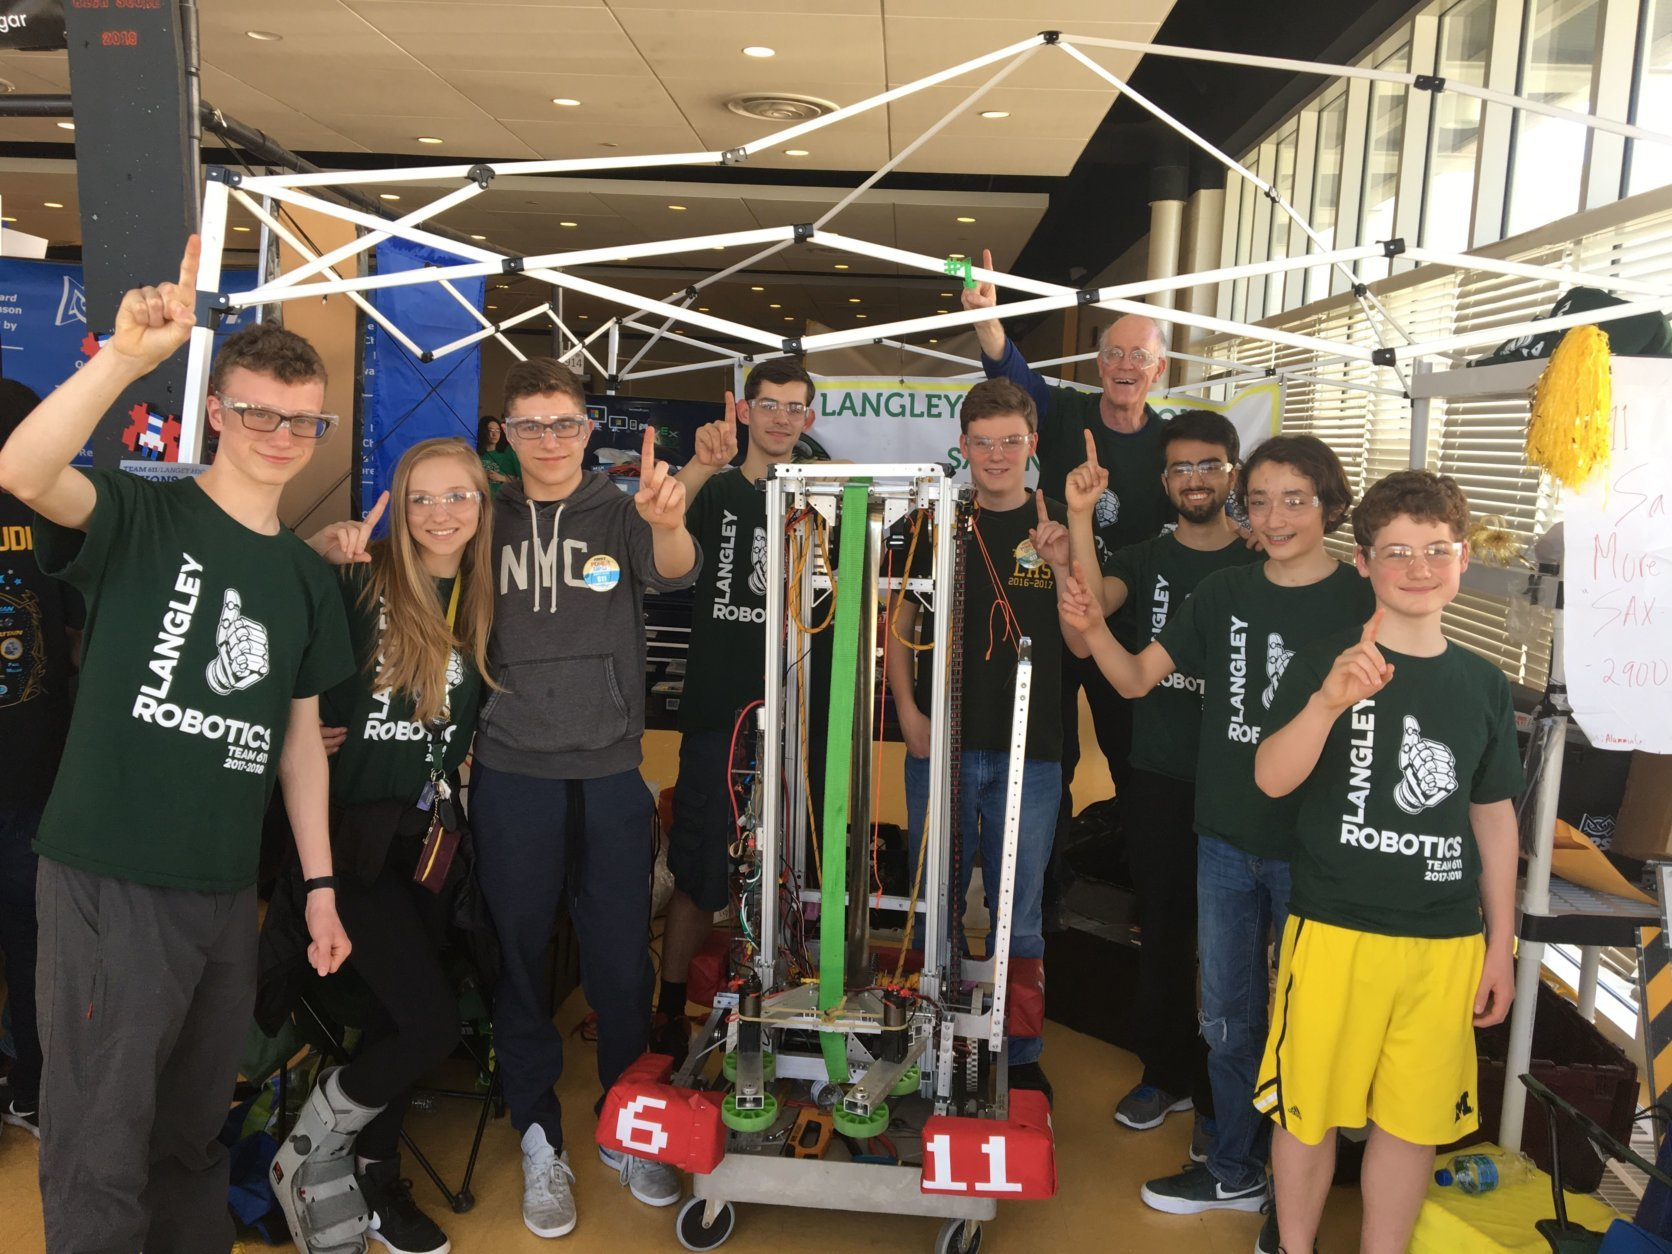 The team won an event in Oxen Hill, Maryland,earlier in the season. (Courtesy of Amy and Derrick Swaak)